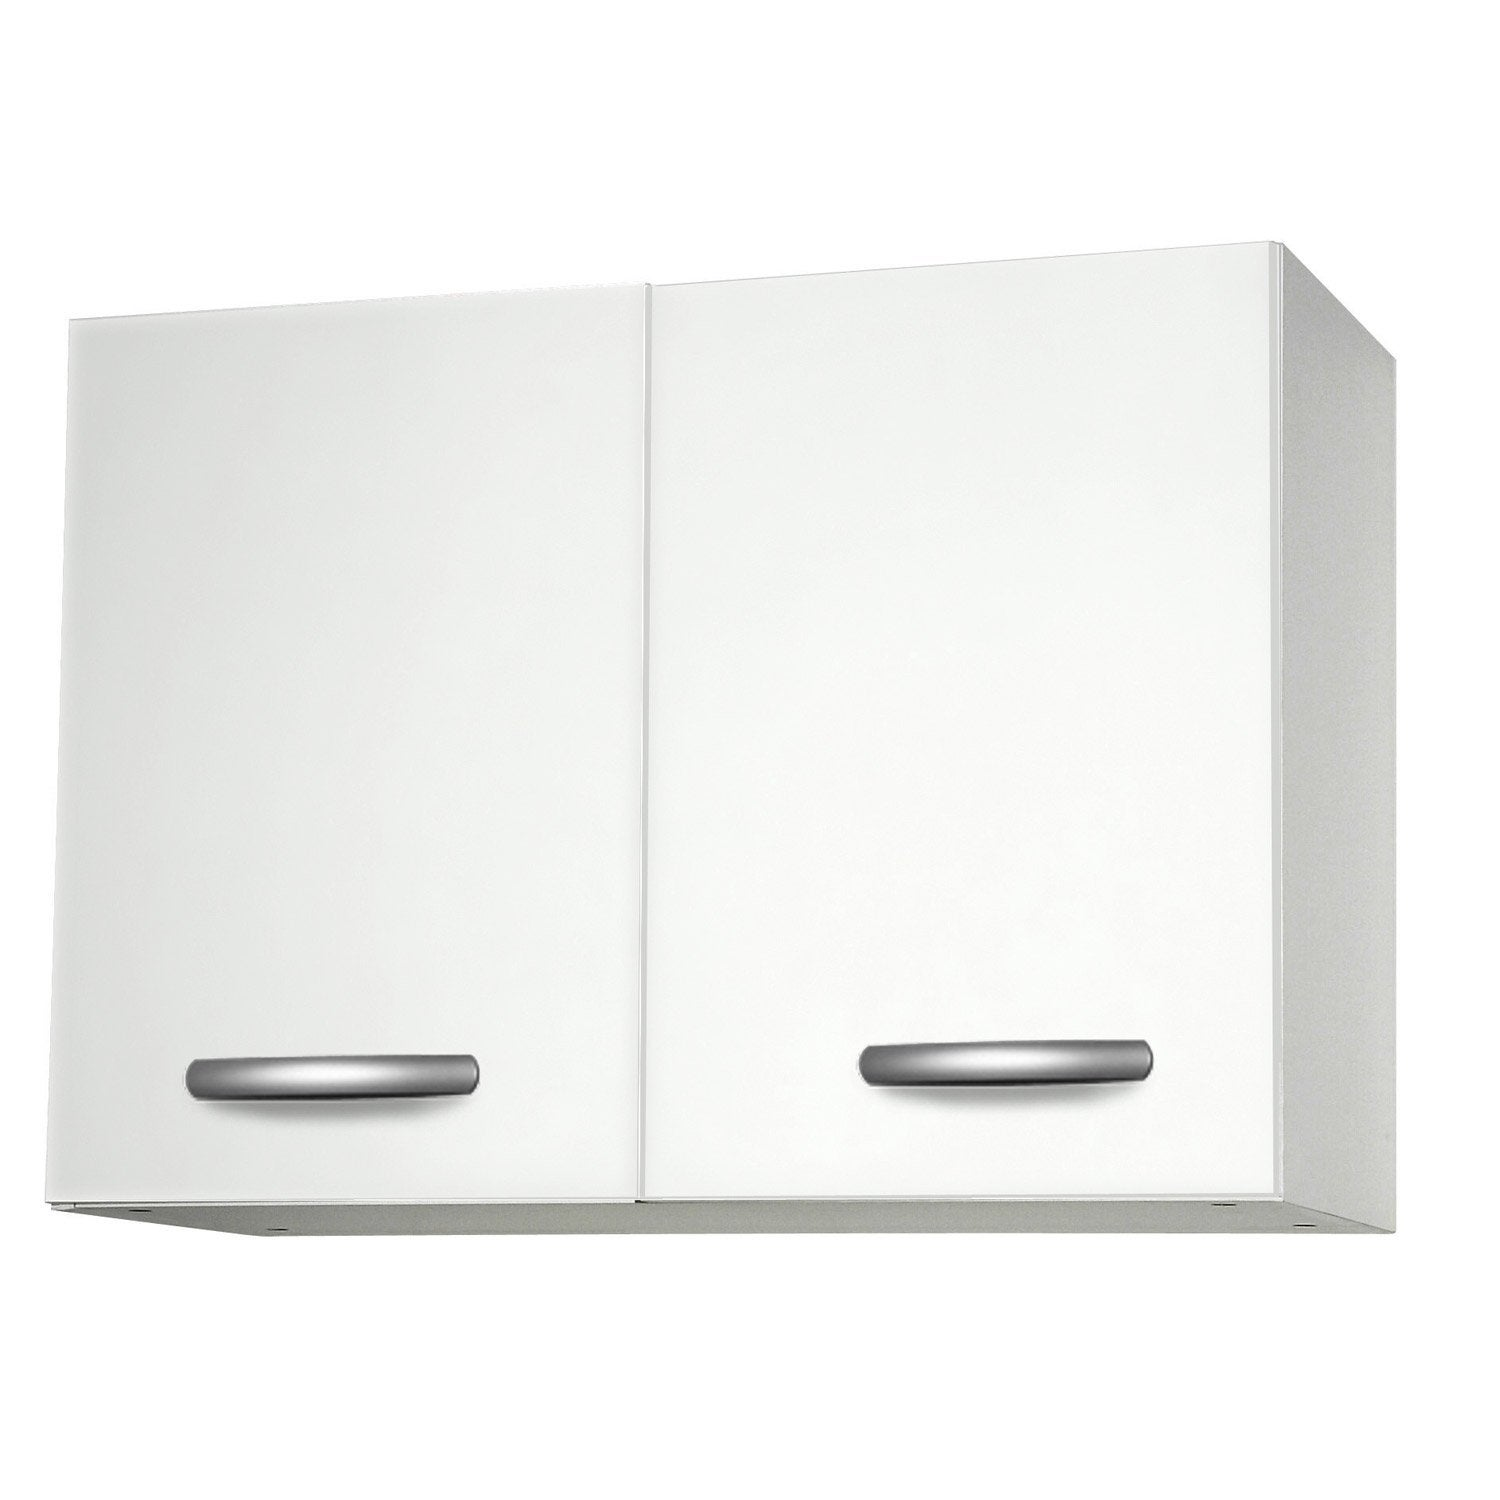 Meuble De Cuisine 1er Prix Spring Meuble Haut Bas Et Sous Evier  # Armoire Fin Depliable Cuisine Ikea